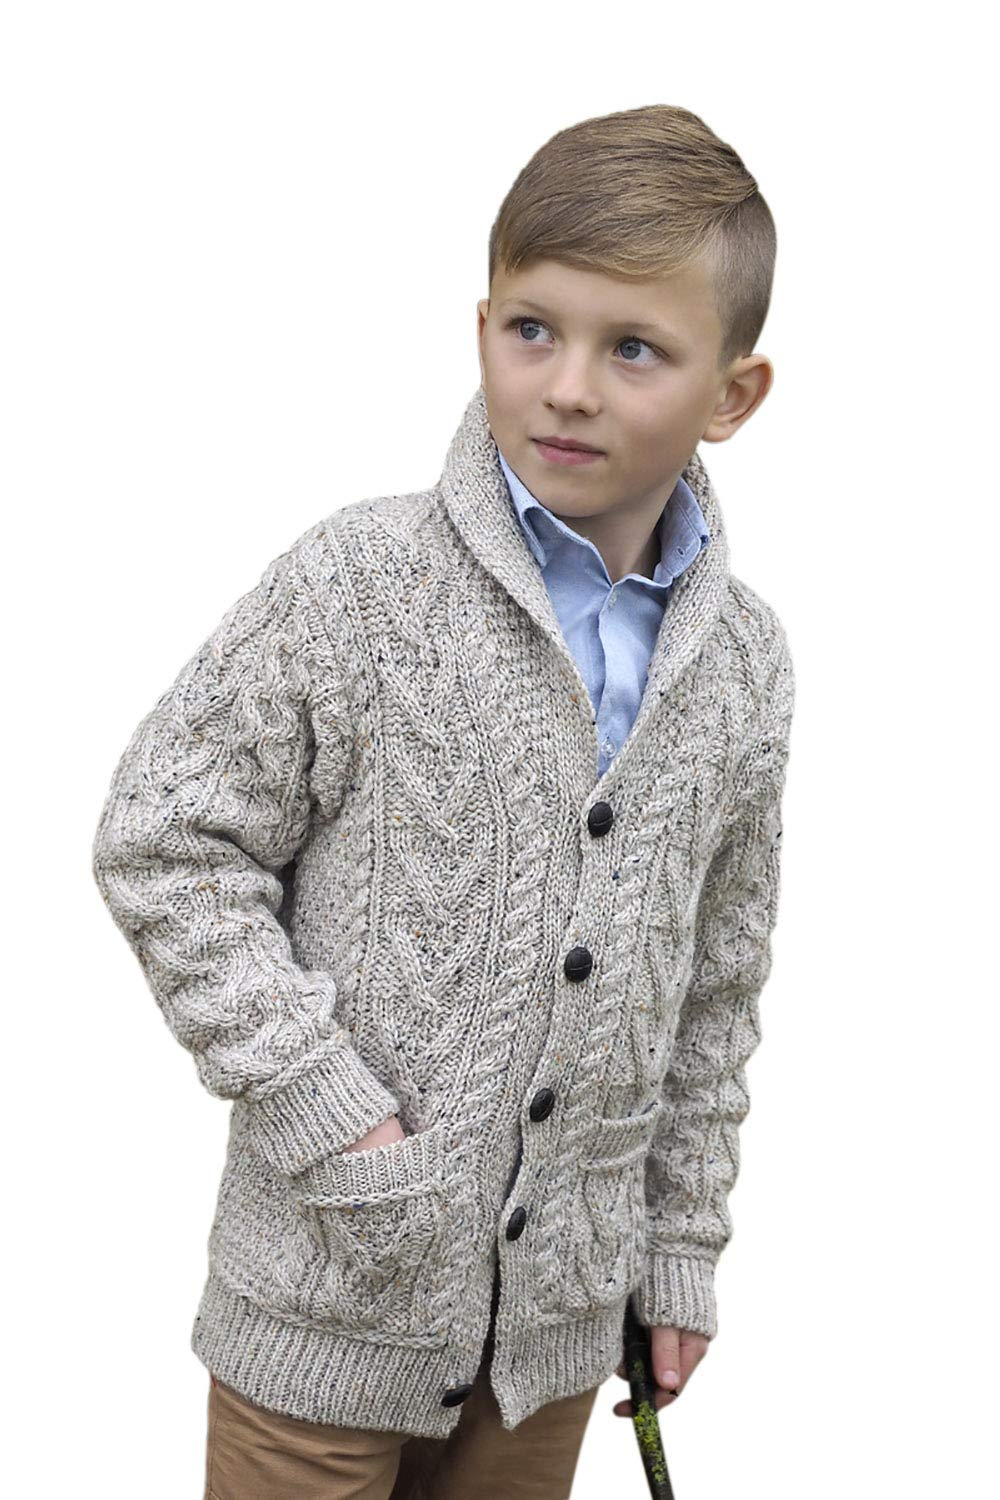 West End Knitwear Boy's Shawl Collar 100% Merino Wool Irish Cardigan Sweater,Oatmeal,6-7 Years